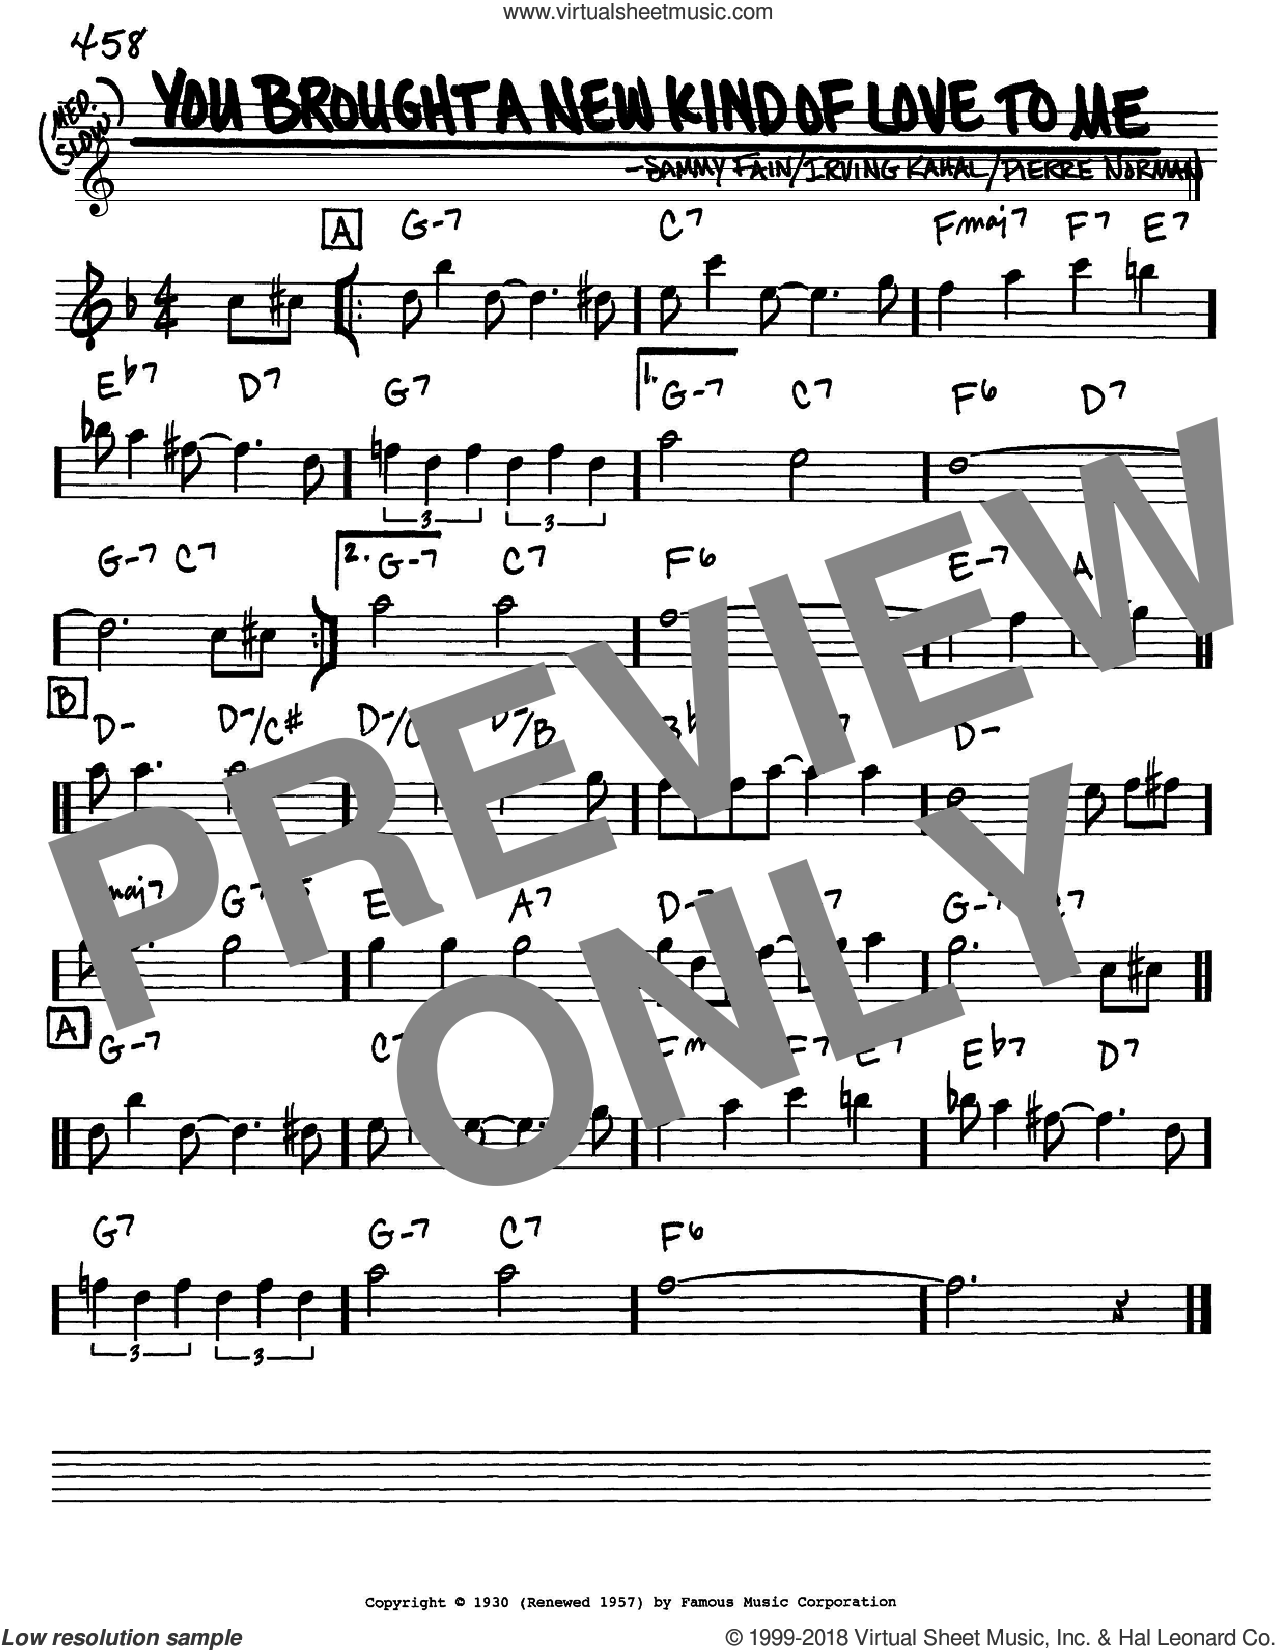 You Brought A New Kind Of Love To Me sheet music for voice and other instruments (in Eb) by Frank Sinatra, Irving Kahal, Pierre Norman and Sammy Fain, intermediate skill level